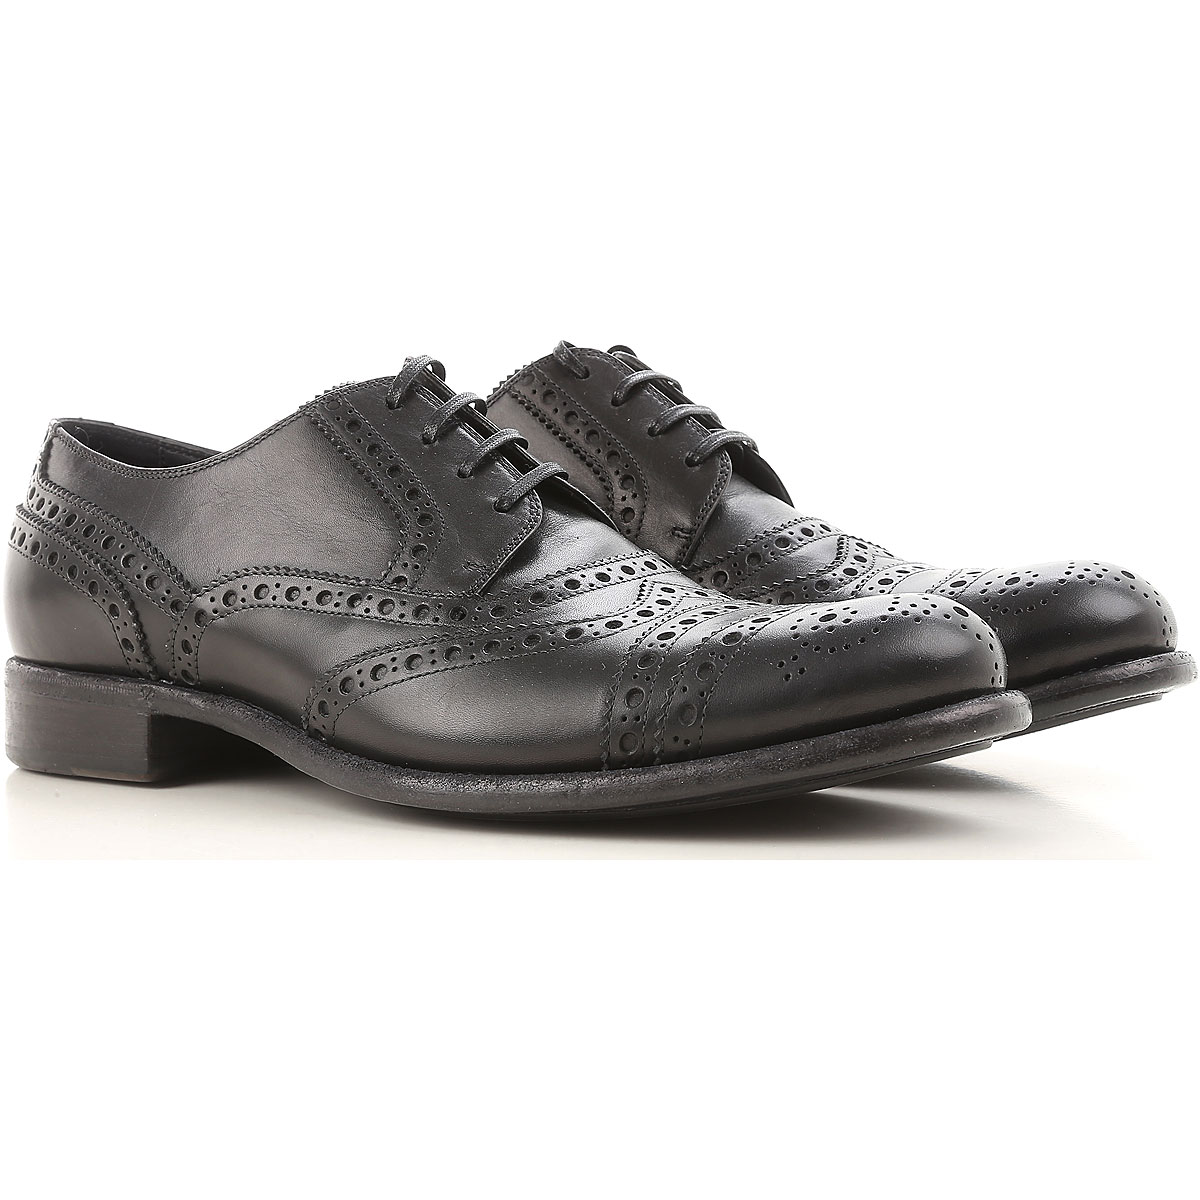 Dolce & Gabbana Brogue Shoes On Sale in Outlet, Black, Leather, 2017, 10.5 9